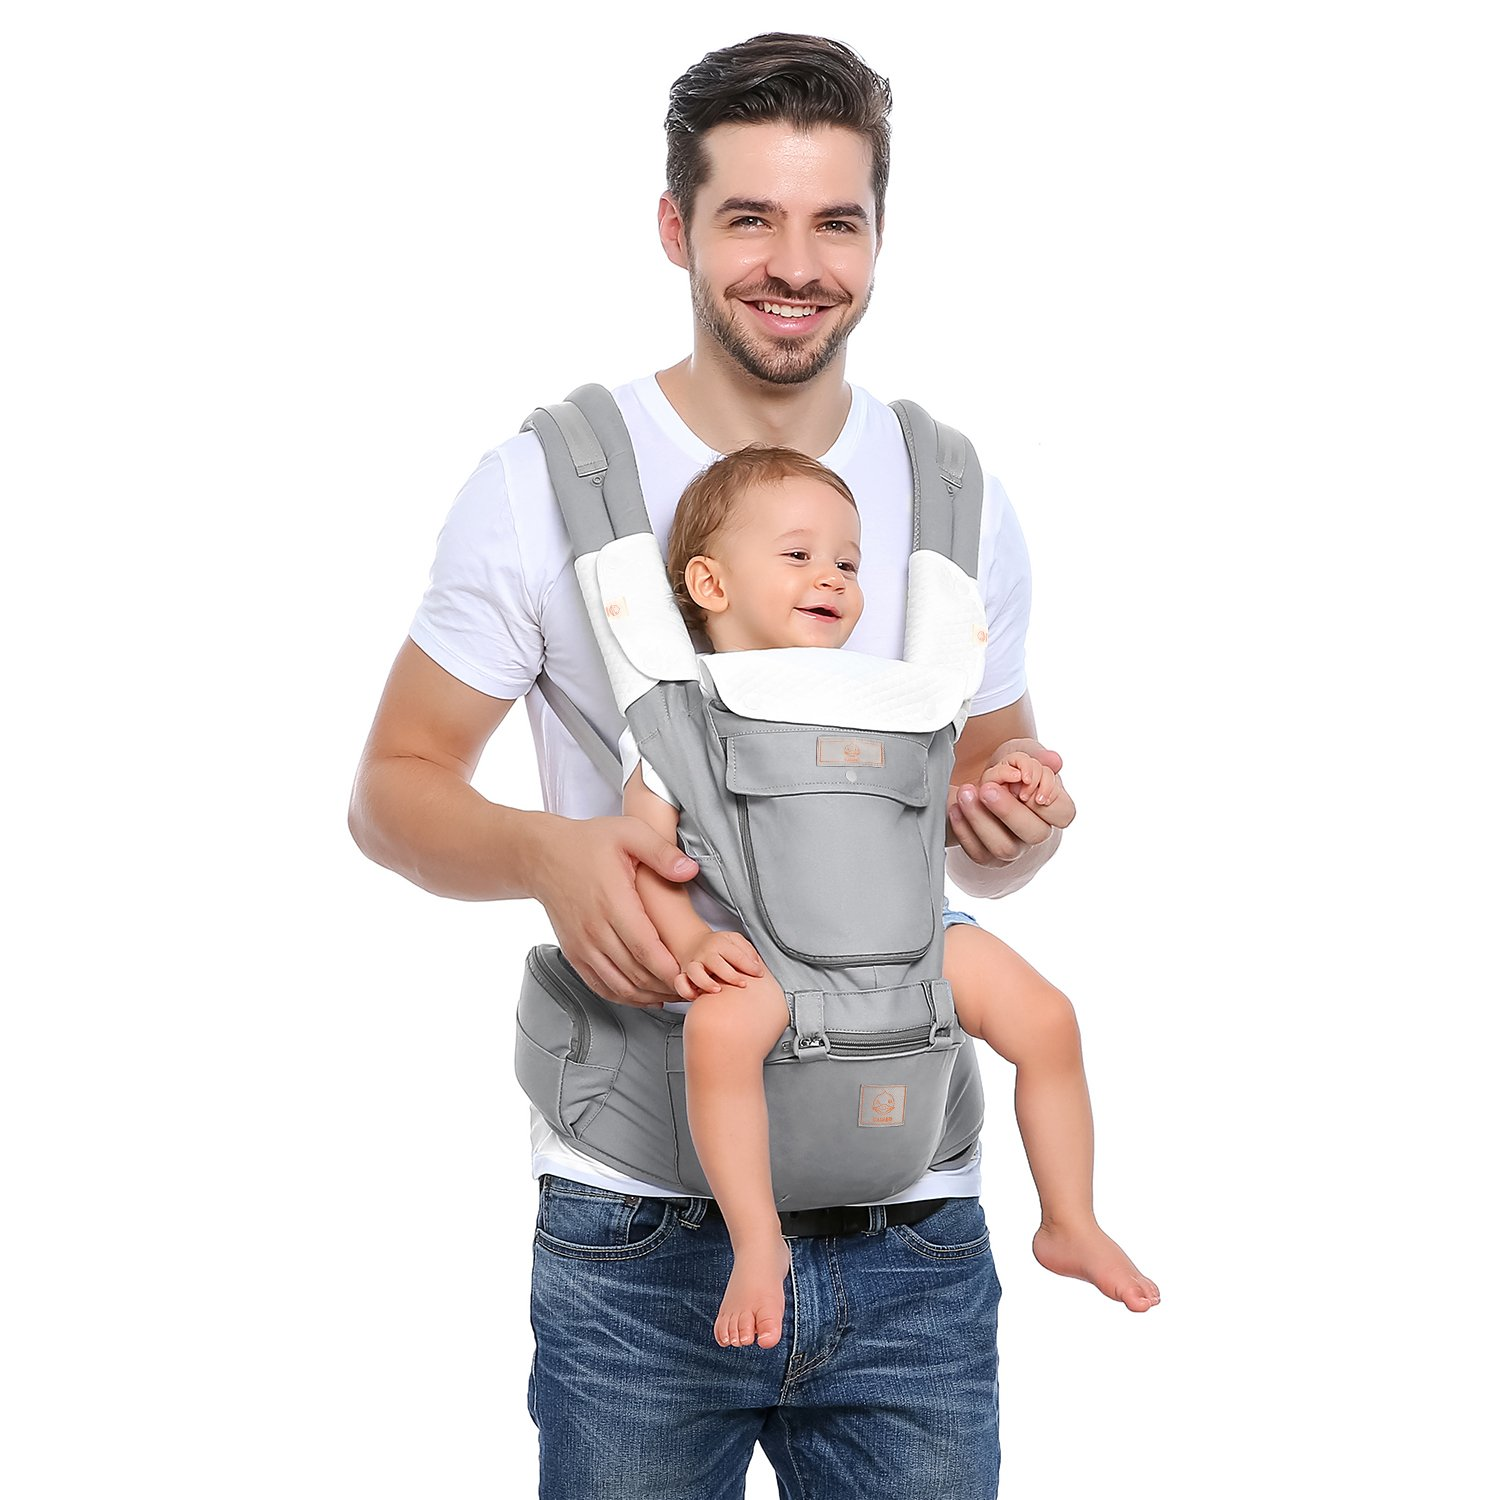 GAGAKU Baby Carrier with Hip Seat 8 Position Carrier Backpack for 0-36 Months Newborn Infant or Toddler with Organic Cotton Teething Pads and Detachable Hood by GAGAKU (Image #5)